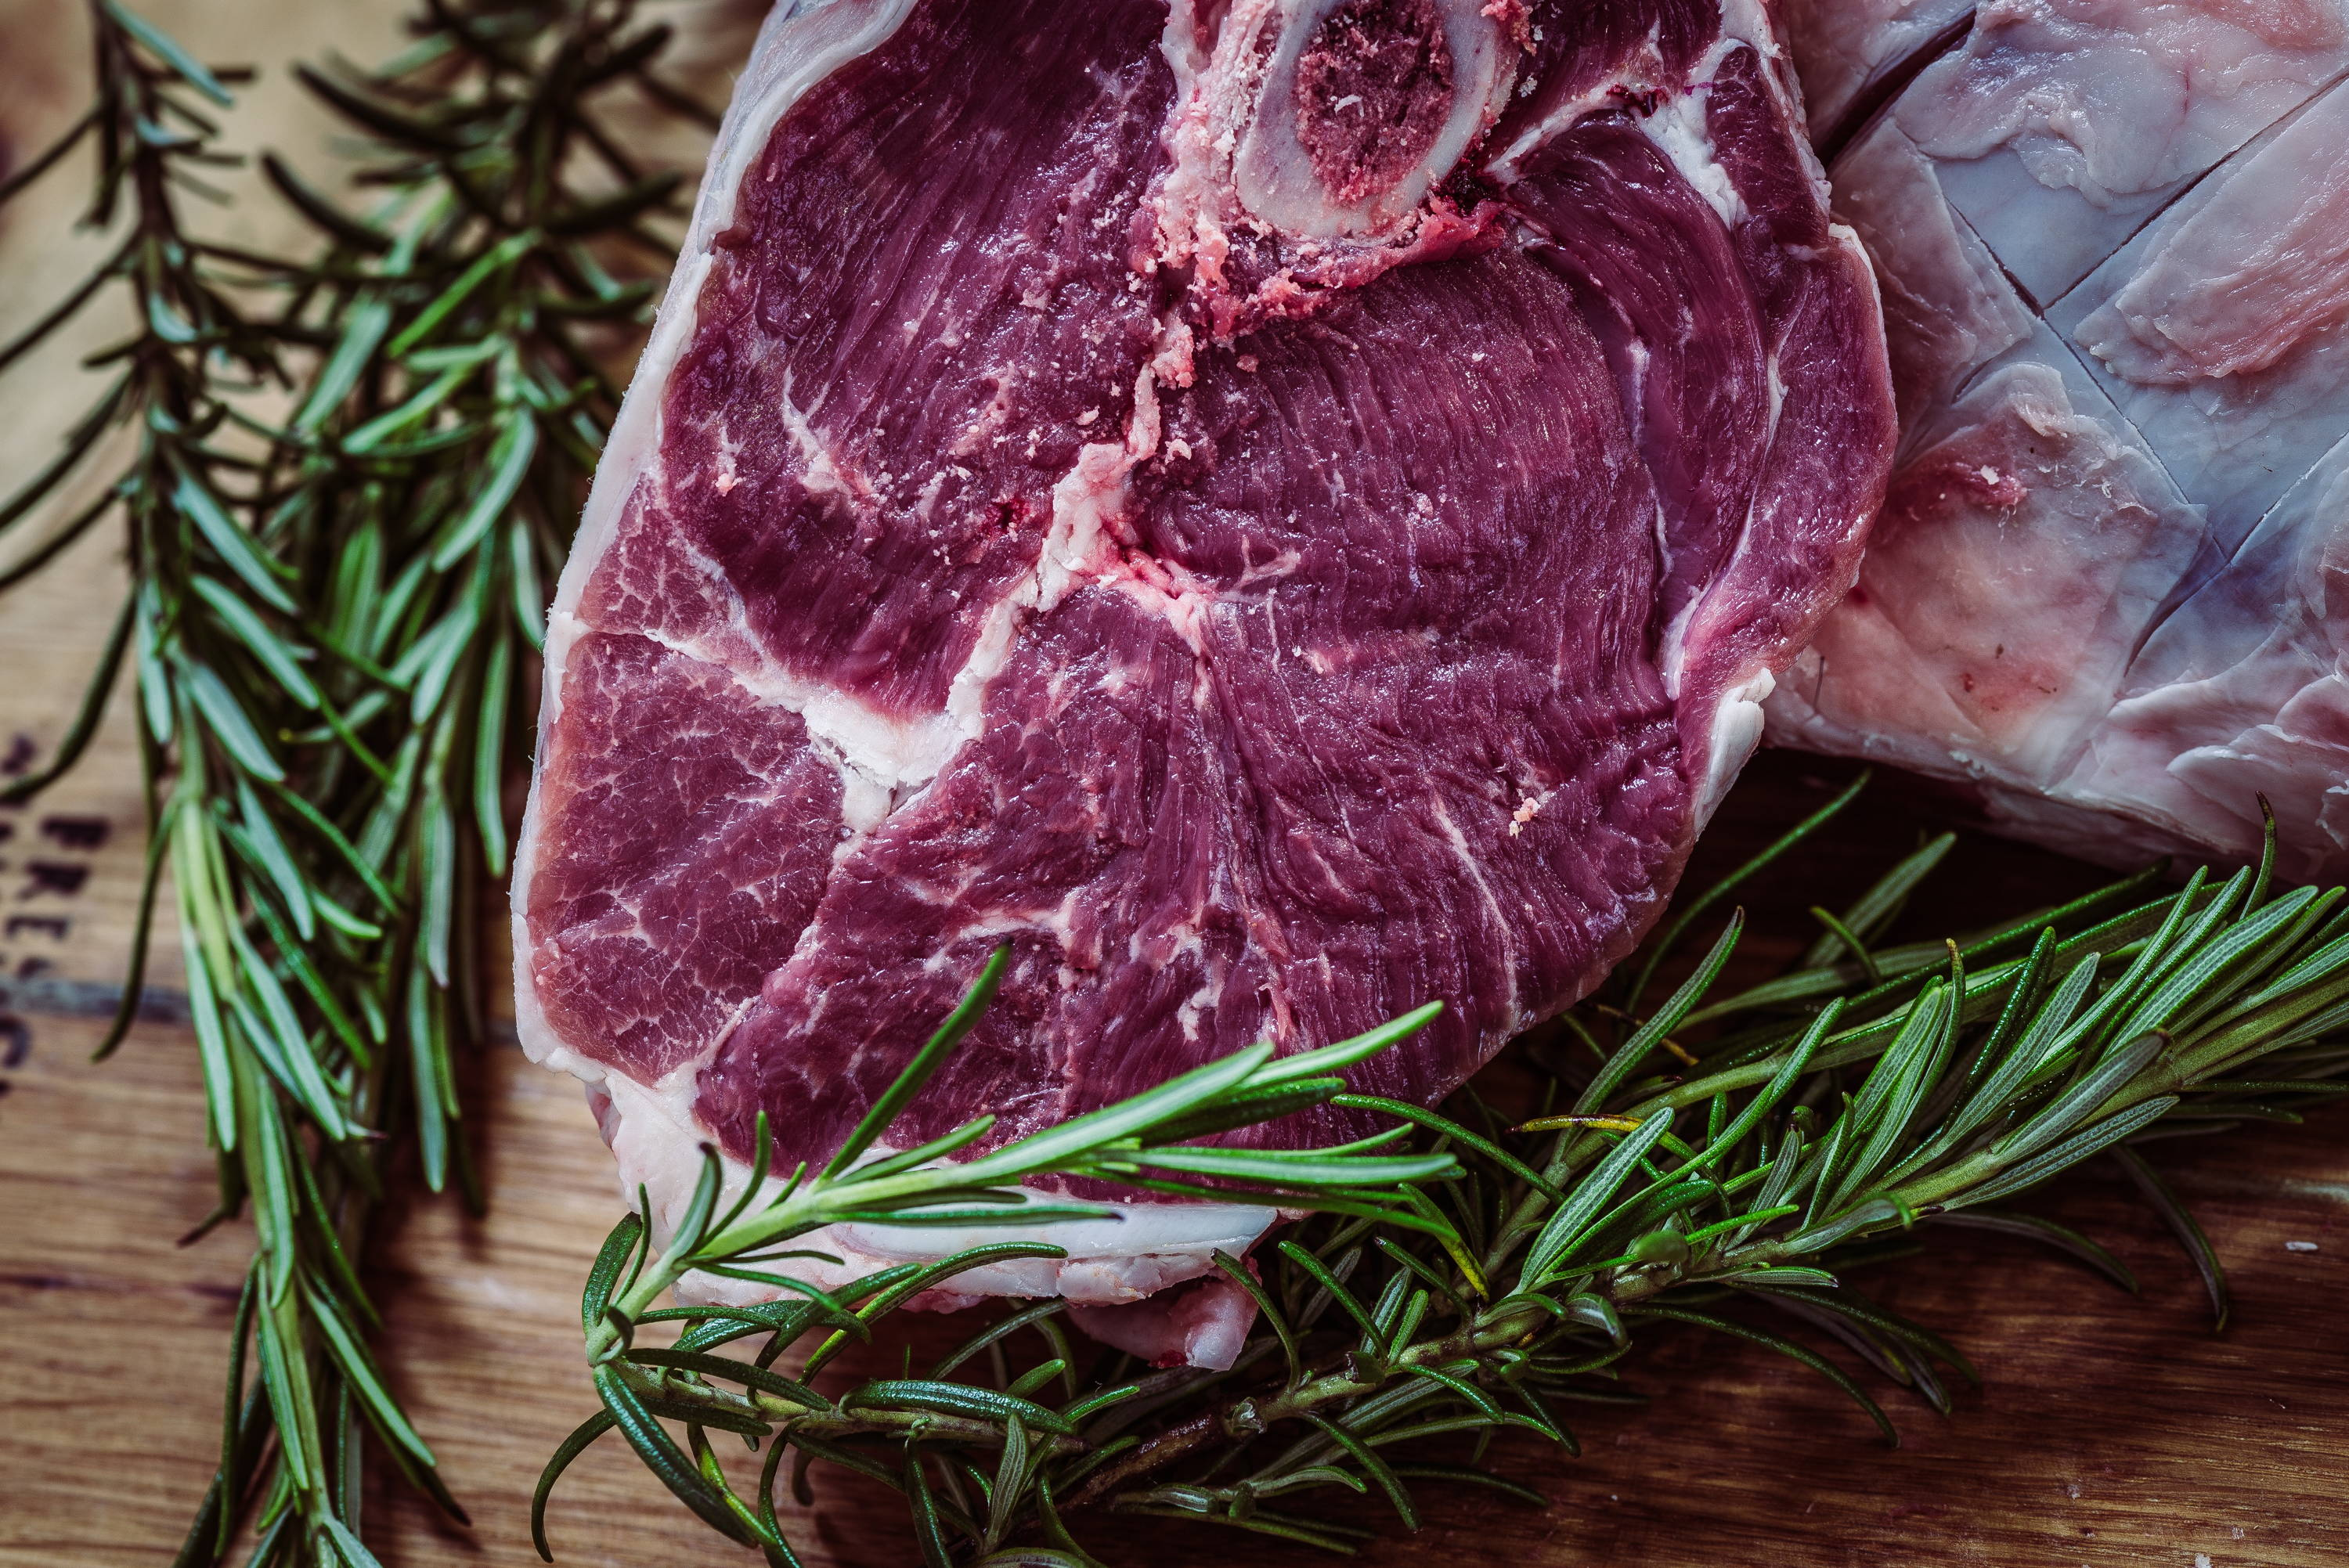 Raw steak with rosemary being prepared.